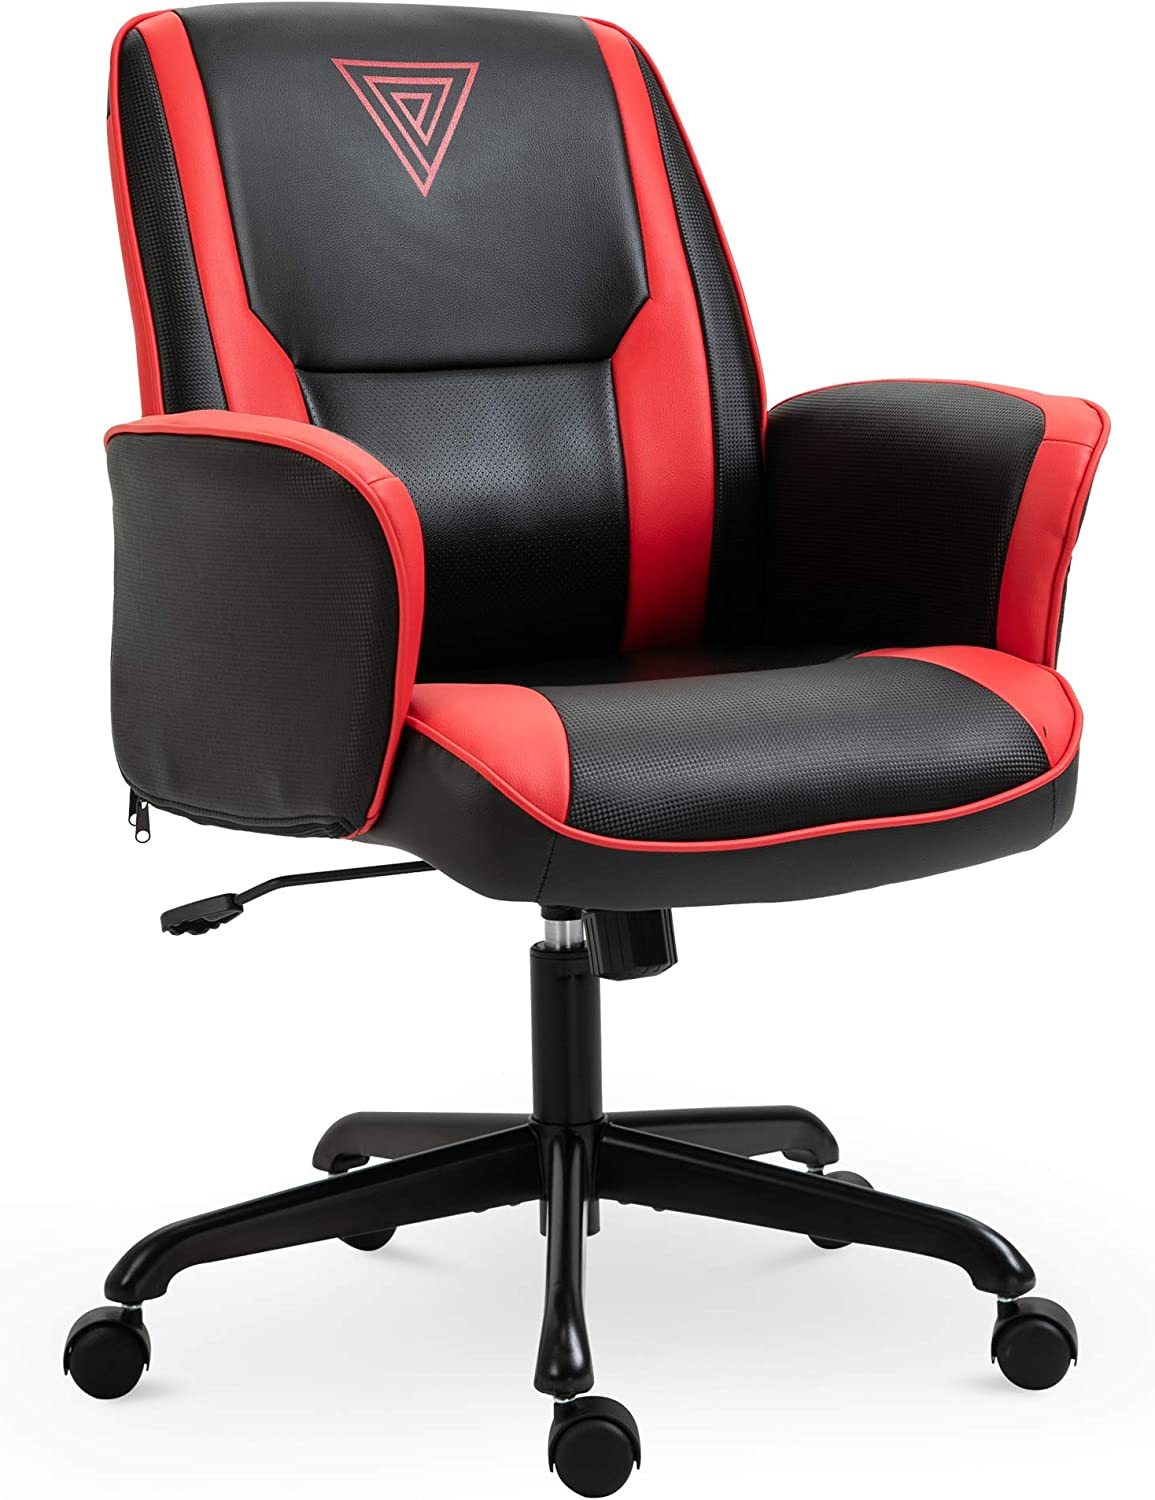 Vinsetto Breathable Faux Leather Office Computer Desk Chair for with an Adjustable Height & a Unique Racing Style, Red